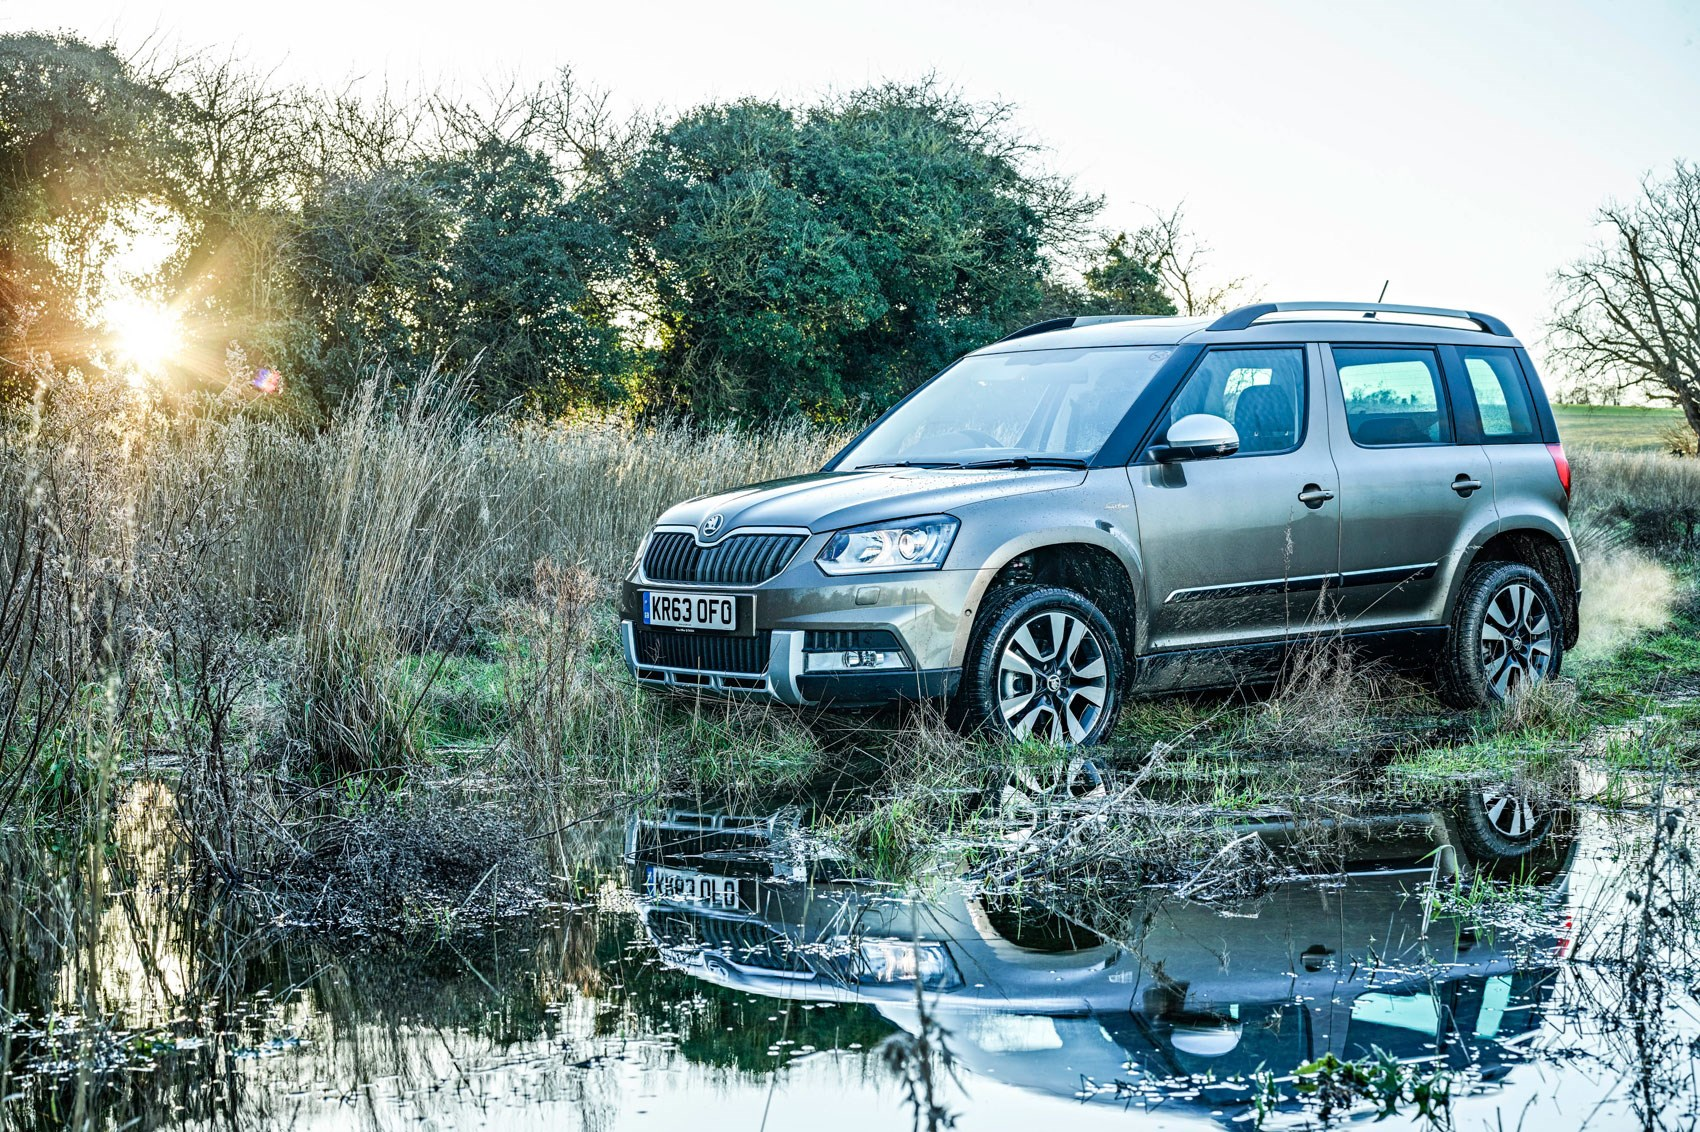 Skoda yeti 2017 review release date new automotive trends skoda - The Next Skoda Yeti Will Feature Far More Conventional Less Polarising Design